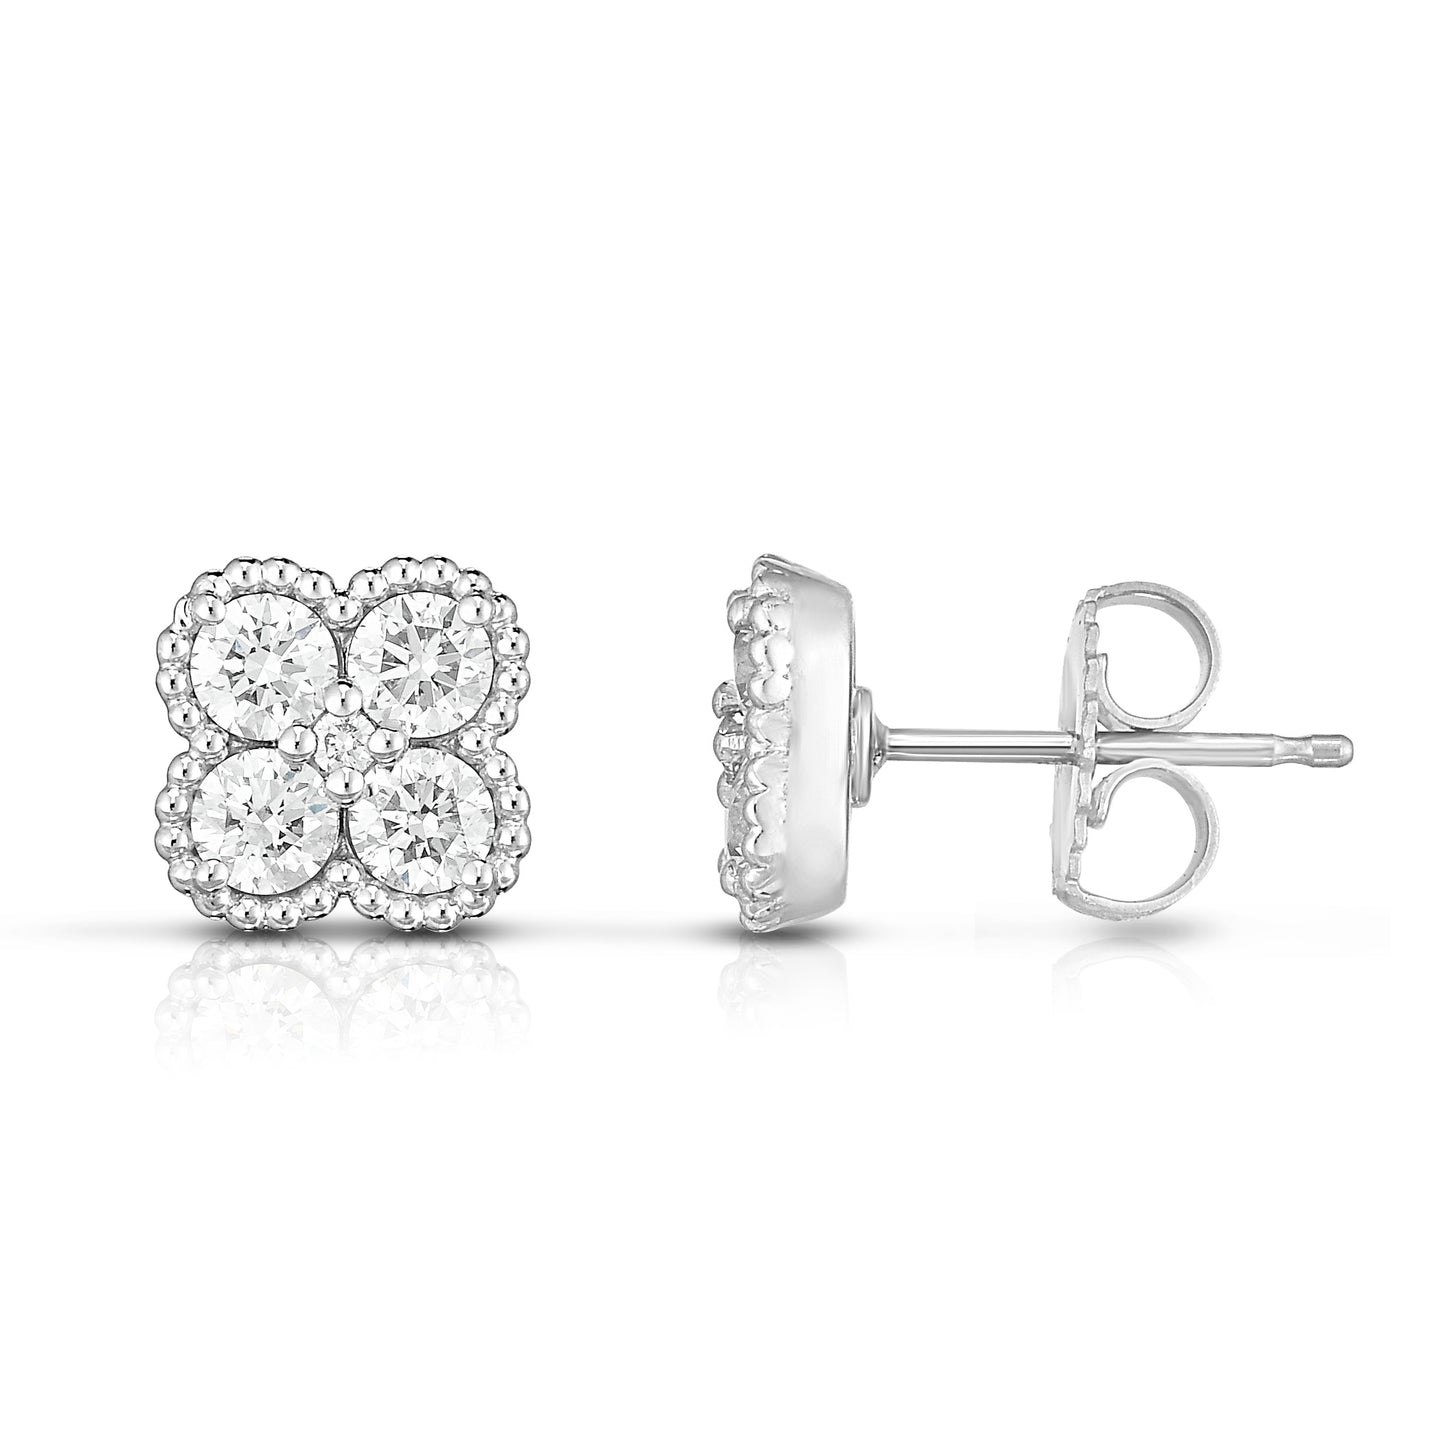 Sabel Collection 14K White Gold Diamond Stud Earrings with Milgrain Accents